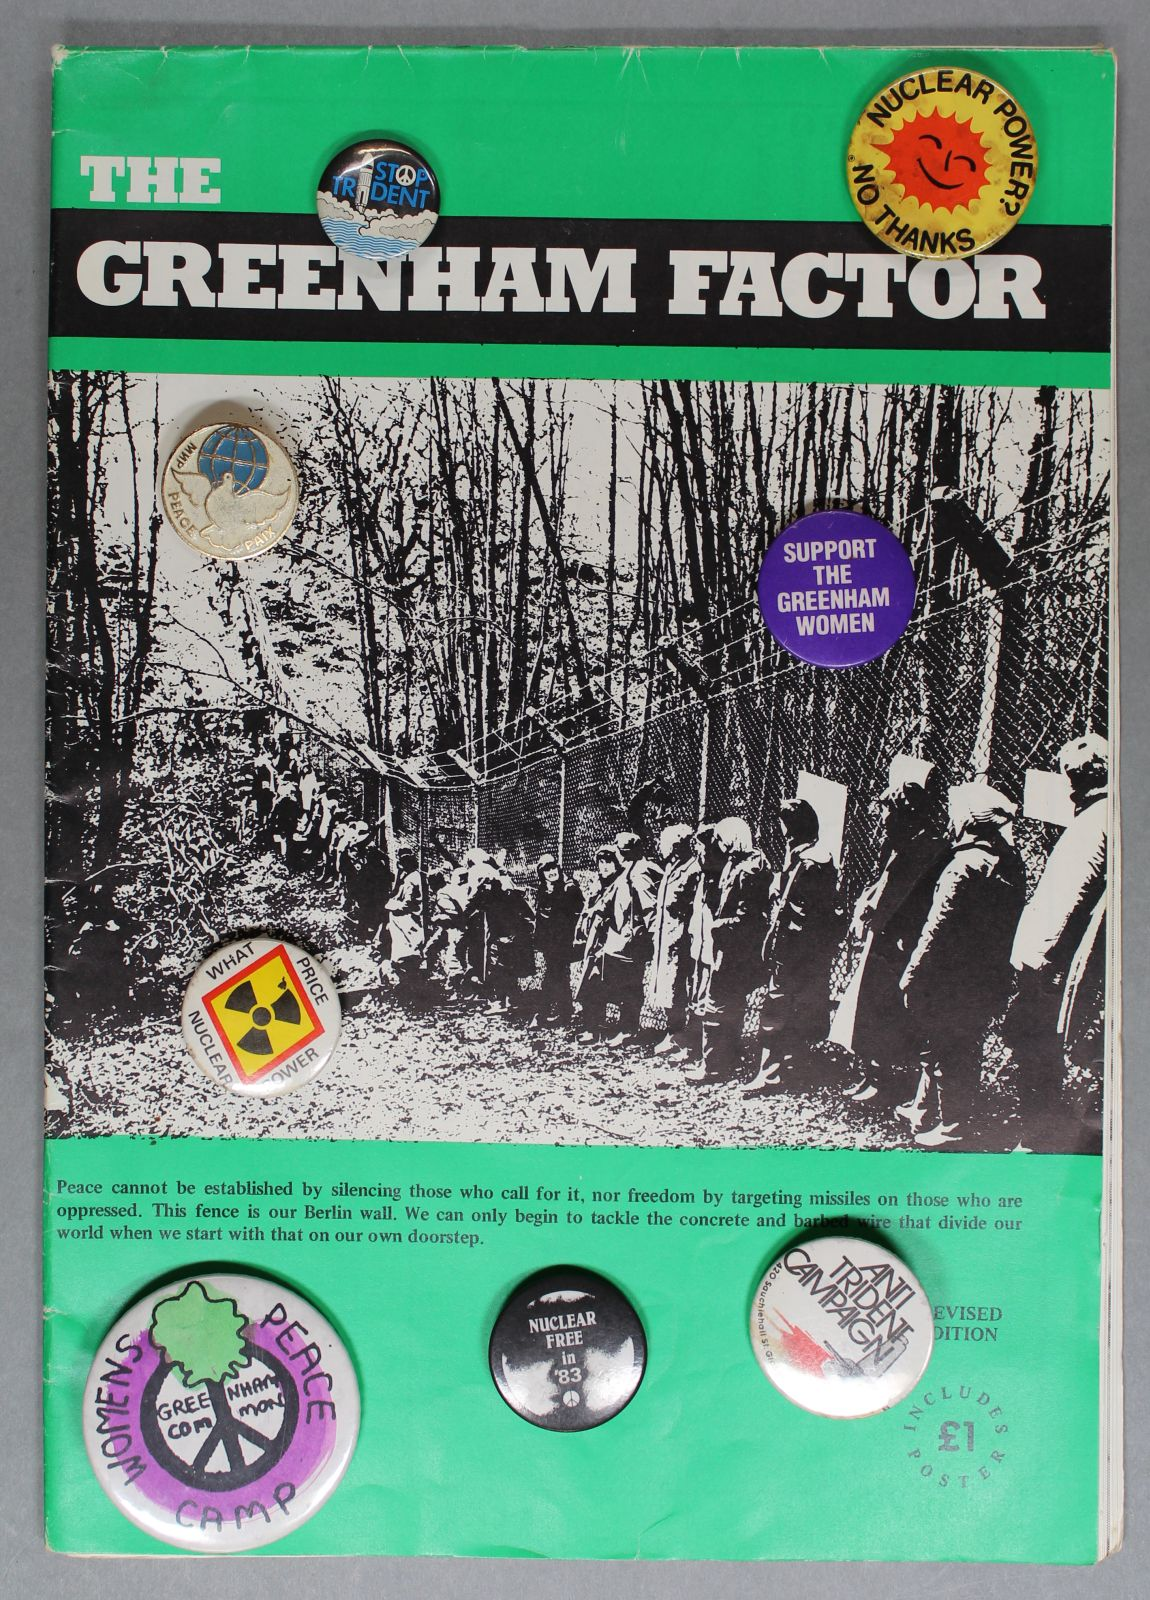 The Greenham Factor booklet with anti-nuclear and peace campaign badges sitting on top of it.